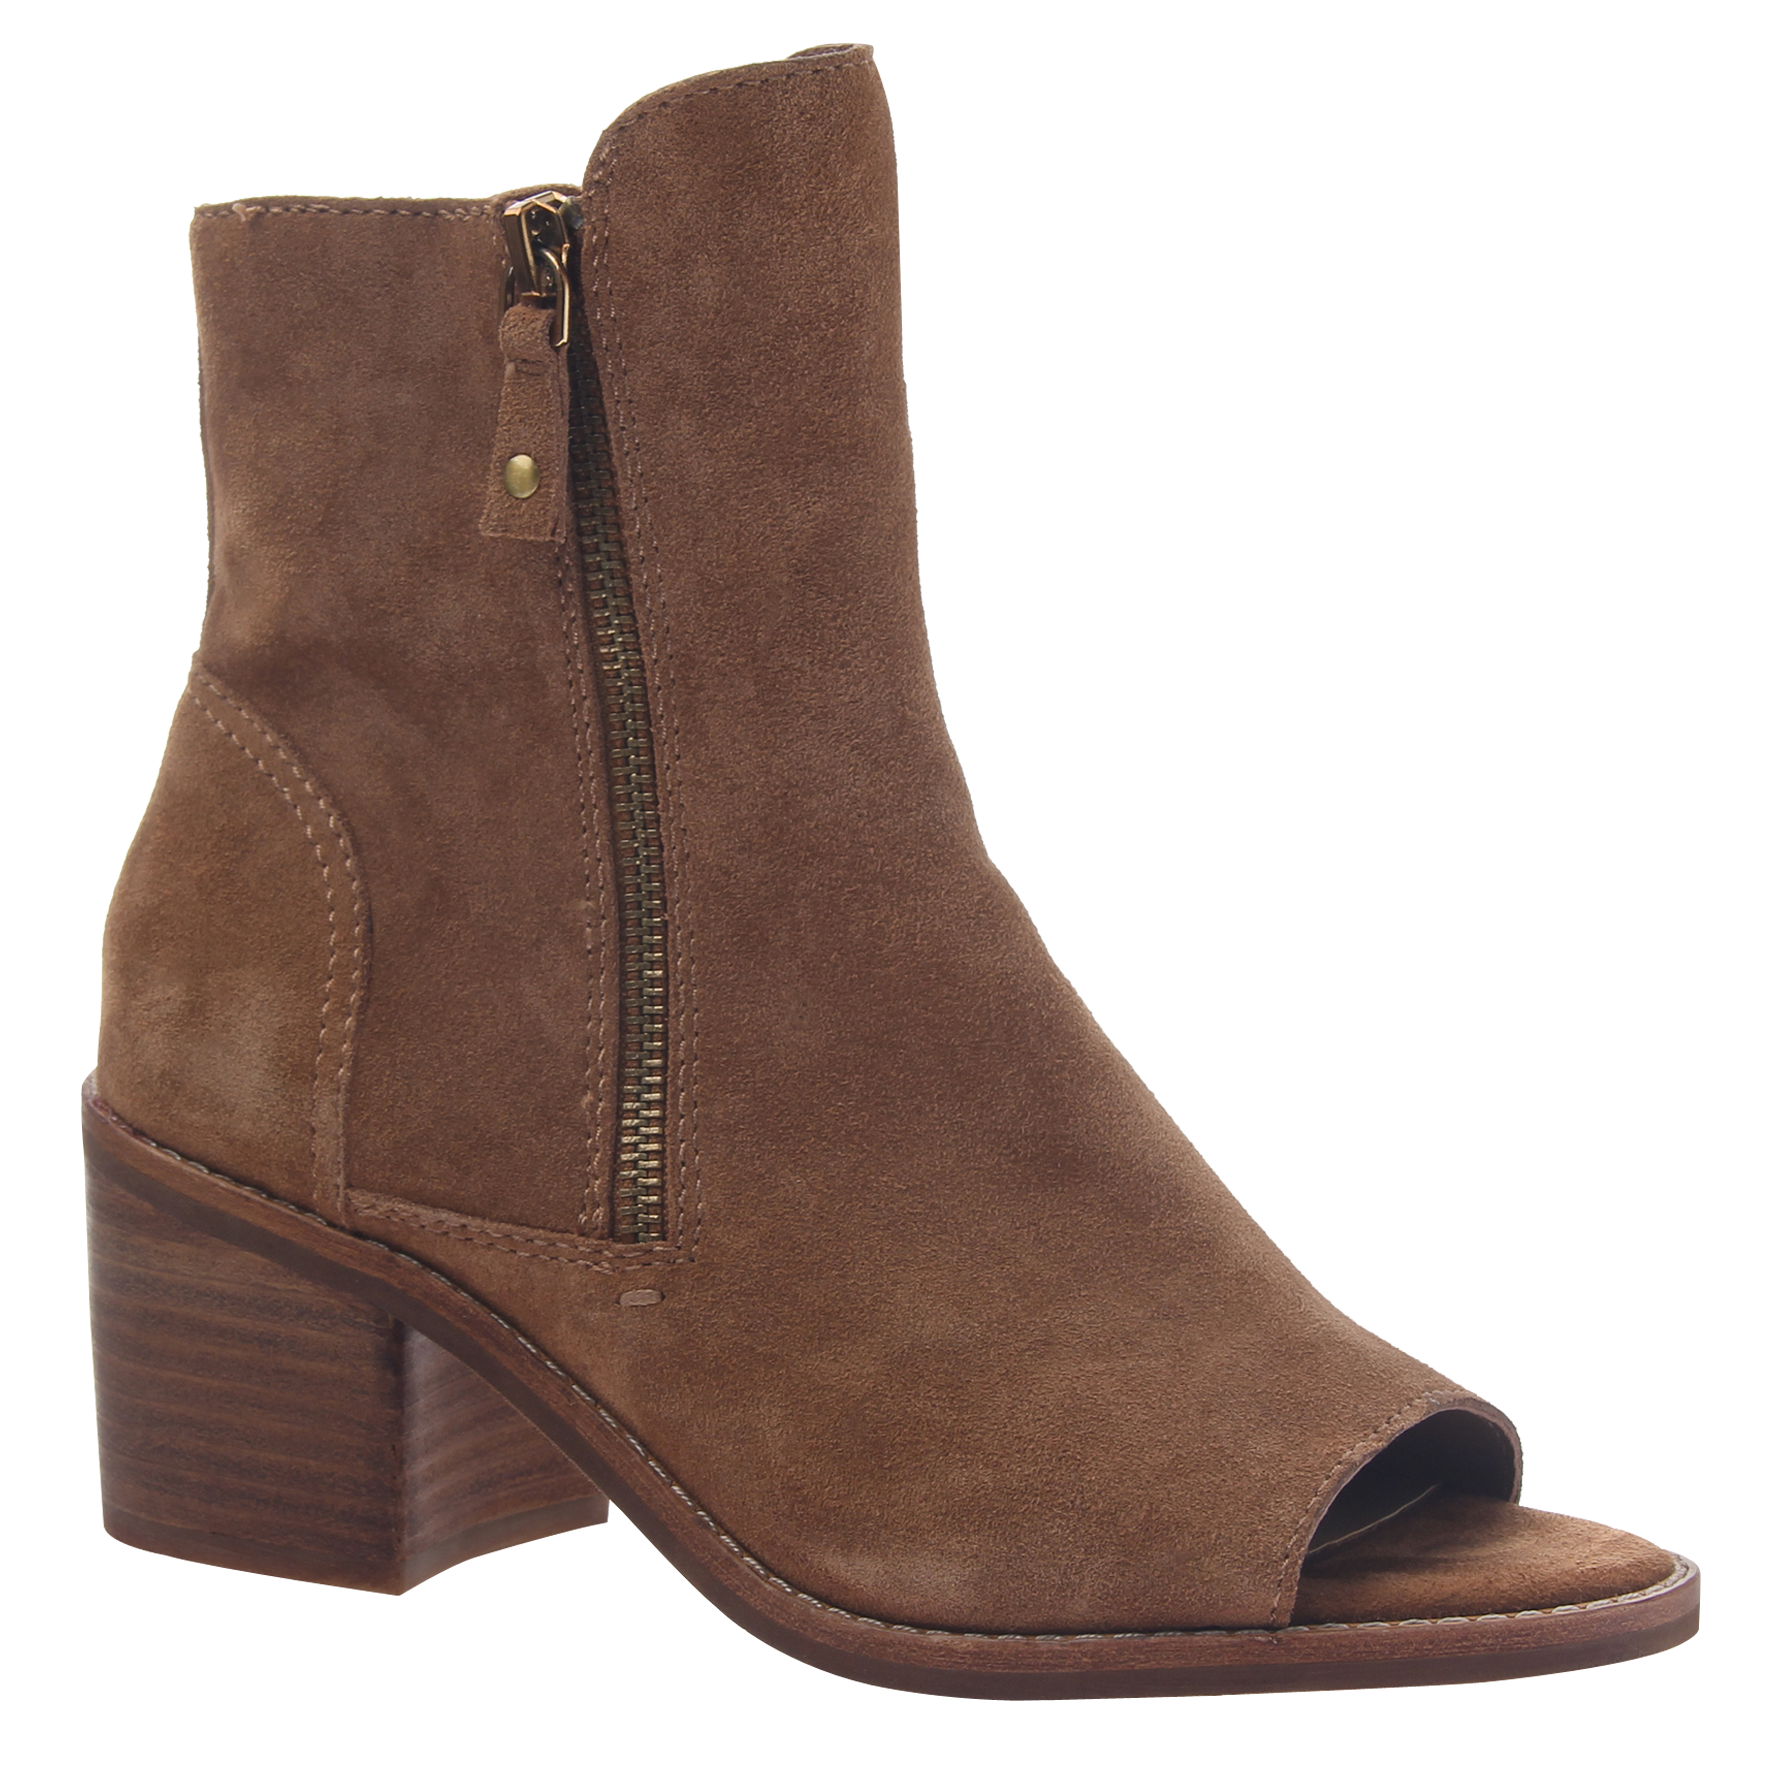 Womens open toe booties Nina in honey